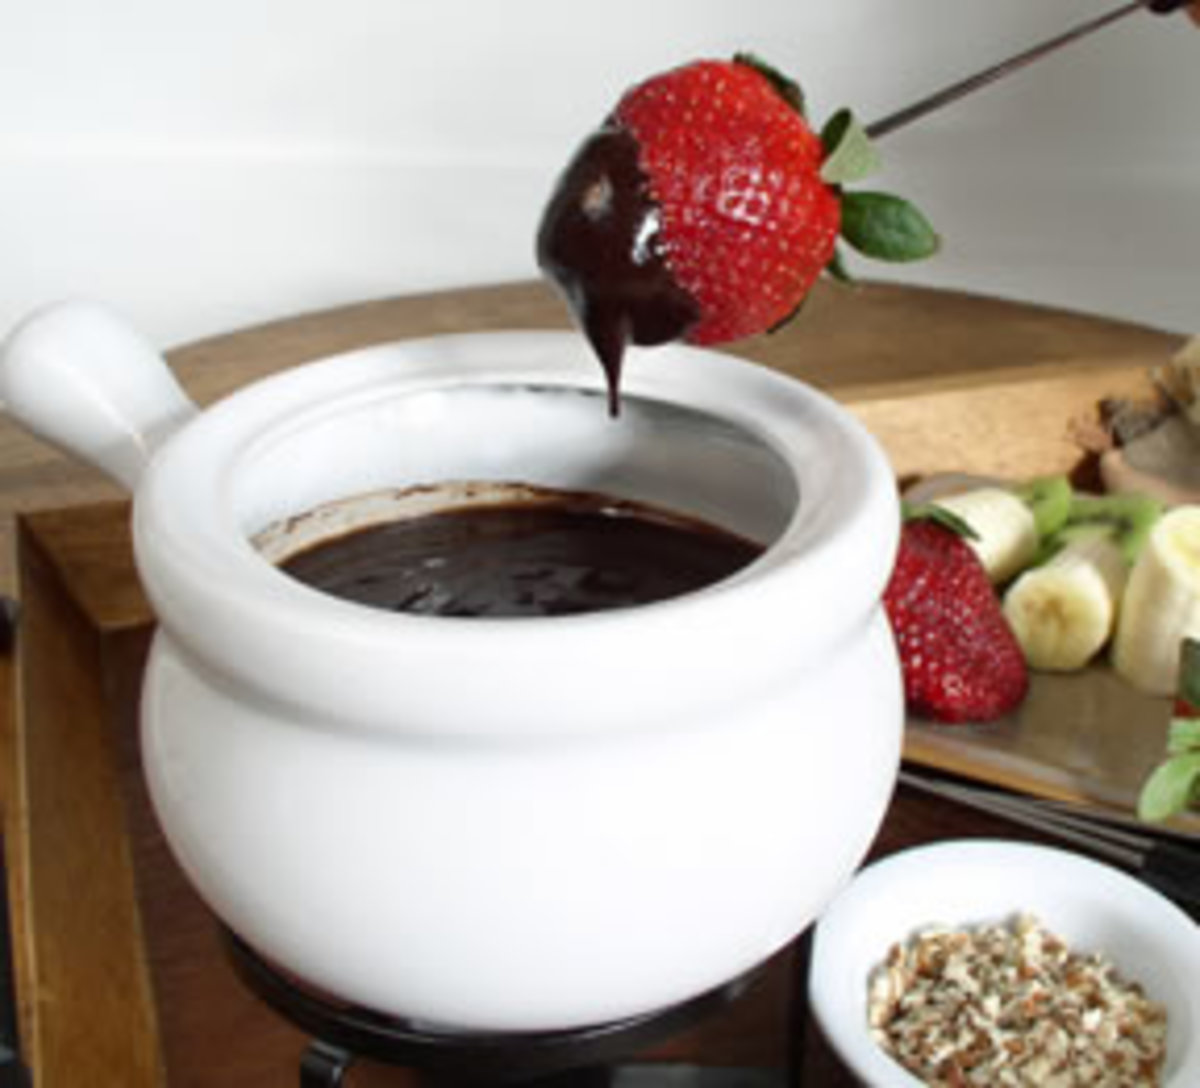 How to Make Chocolate Fondue-With Chocolate Fondue Recipes